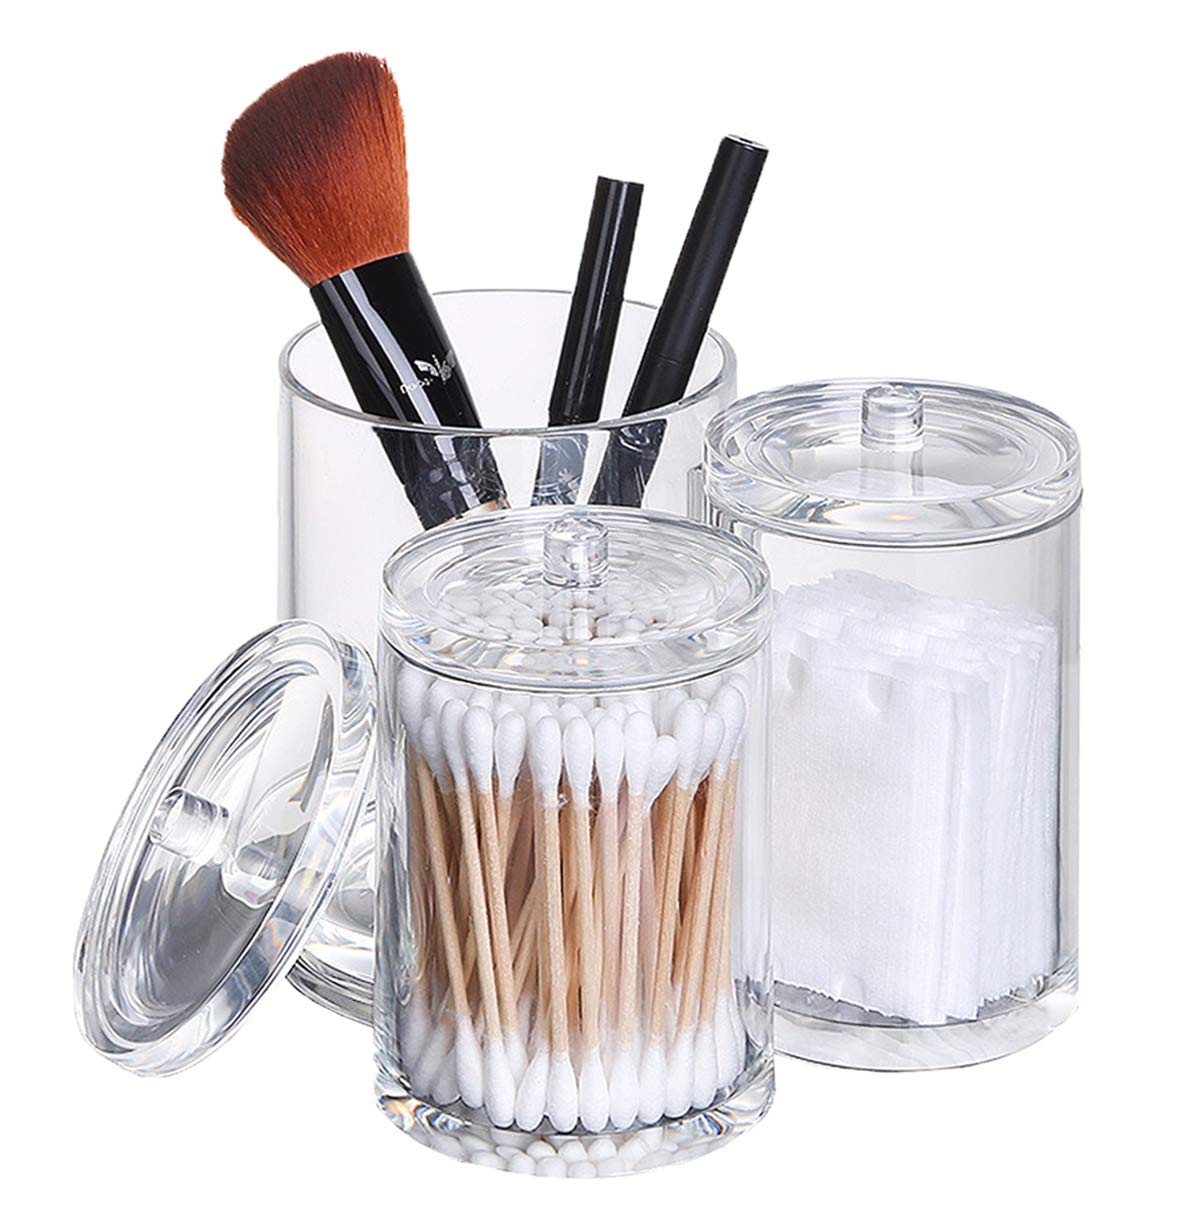 Selighting Makeup Brush Holder Organizer Acrylic Clear Cotton Ball Swab Holder Round Dispenser Bathroom Organization Cosmetic Containers Plastic Apothecary Jars with Lids (Transparent, Trio Cup)